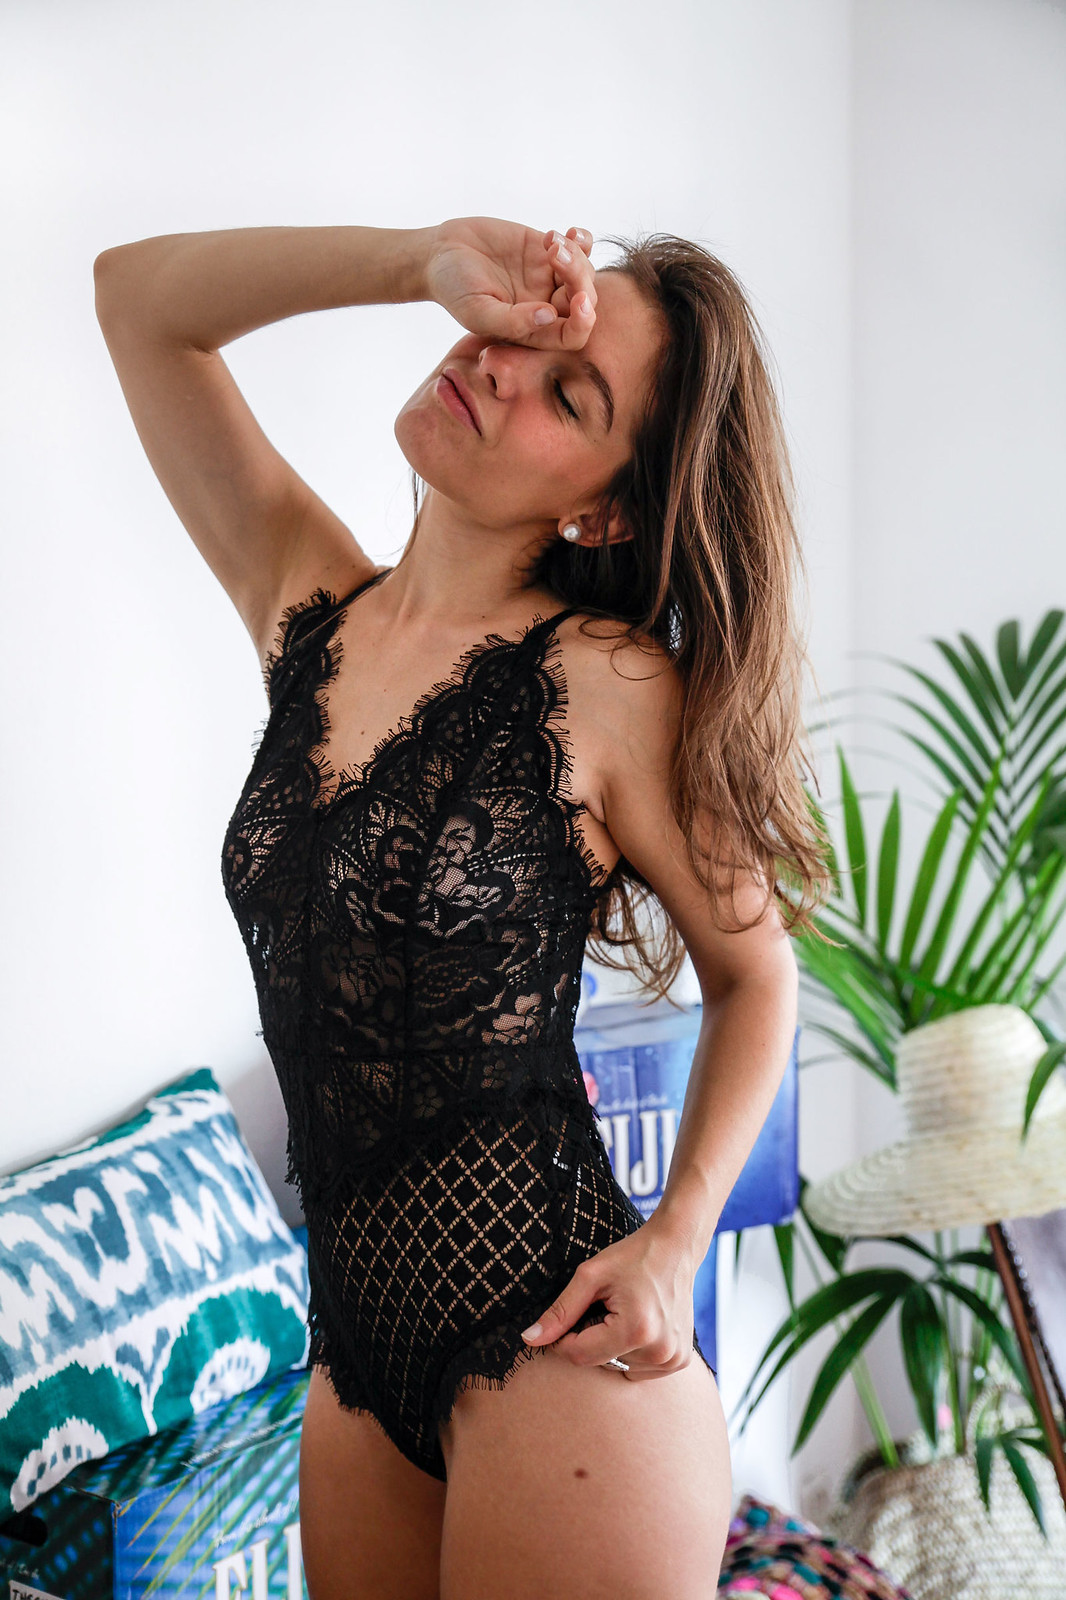 08_danity_paris_sexy_body_influencer_barcelona_theguestgirl_laura_santolaria_aloha_home_black_lace_sexy_post